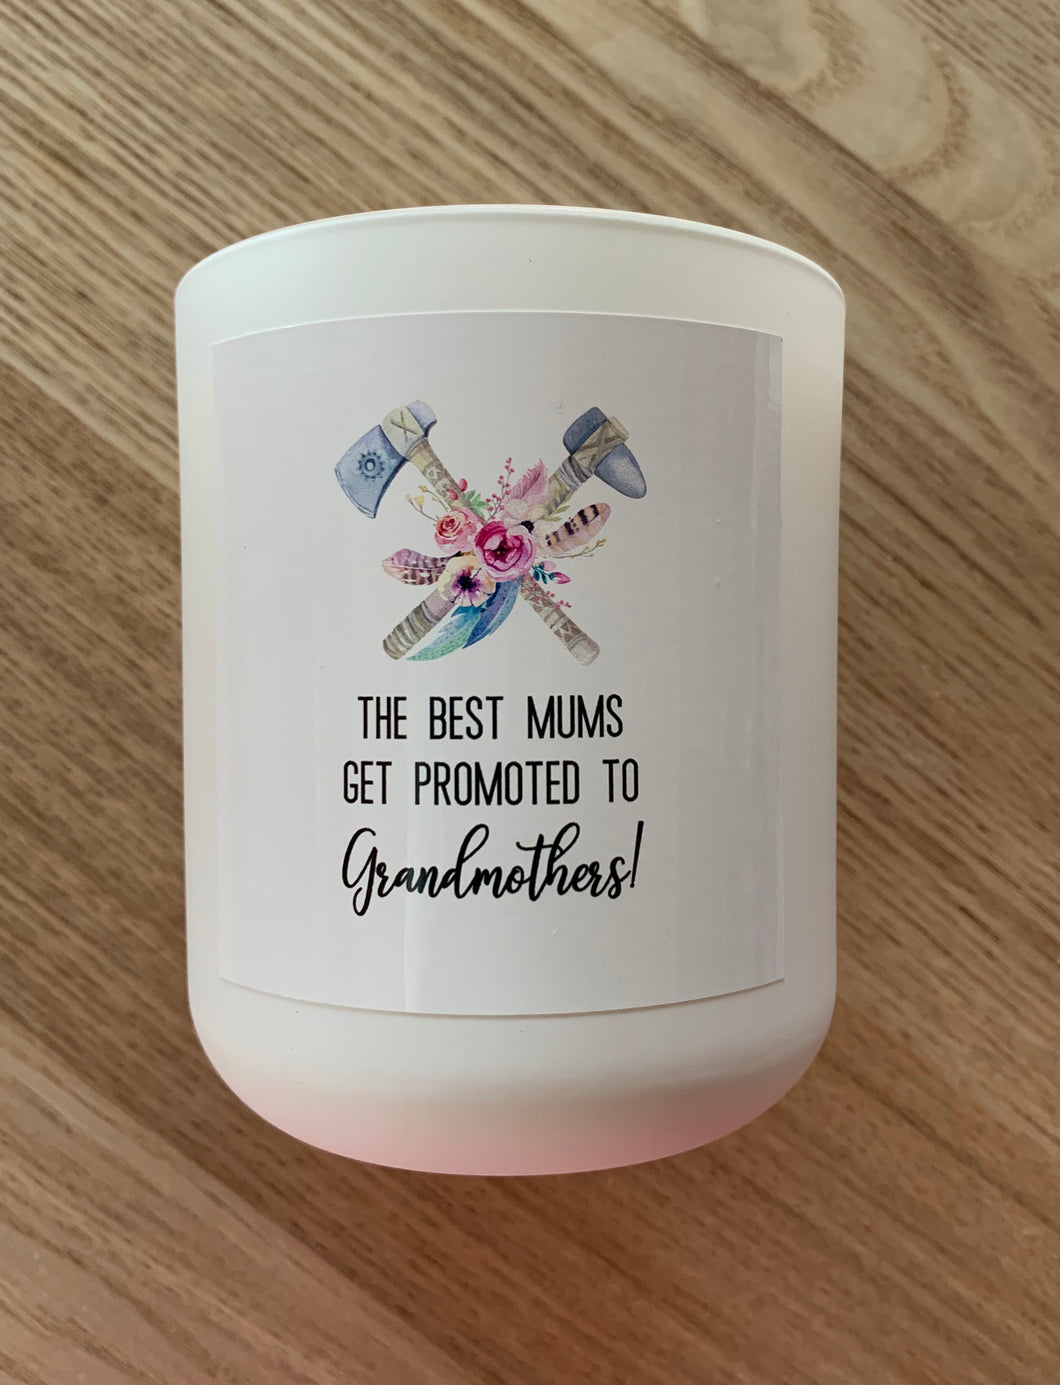 All the best mums get promoted to Grandmothers - Large